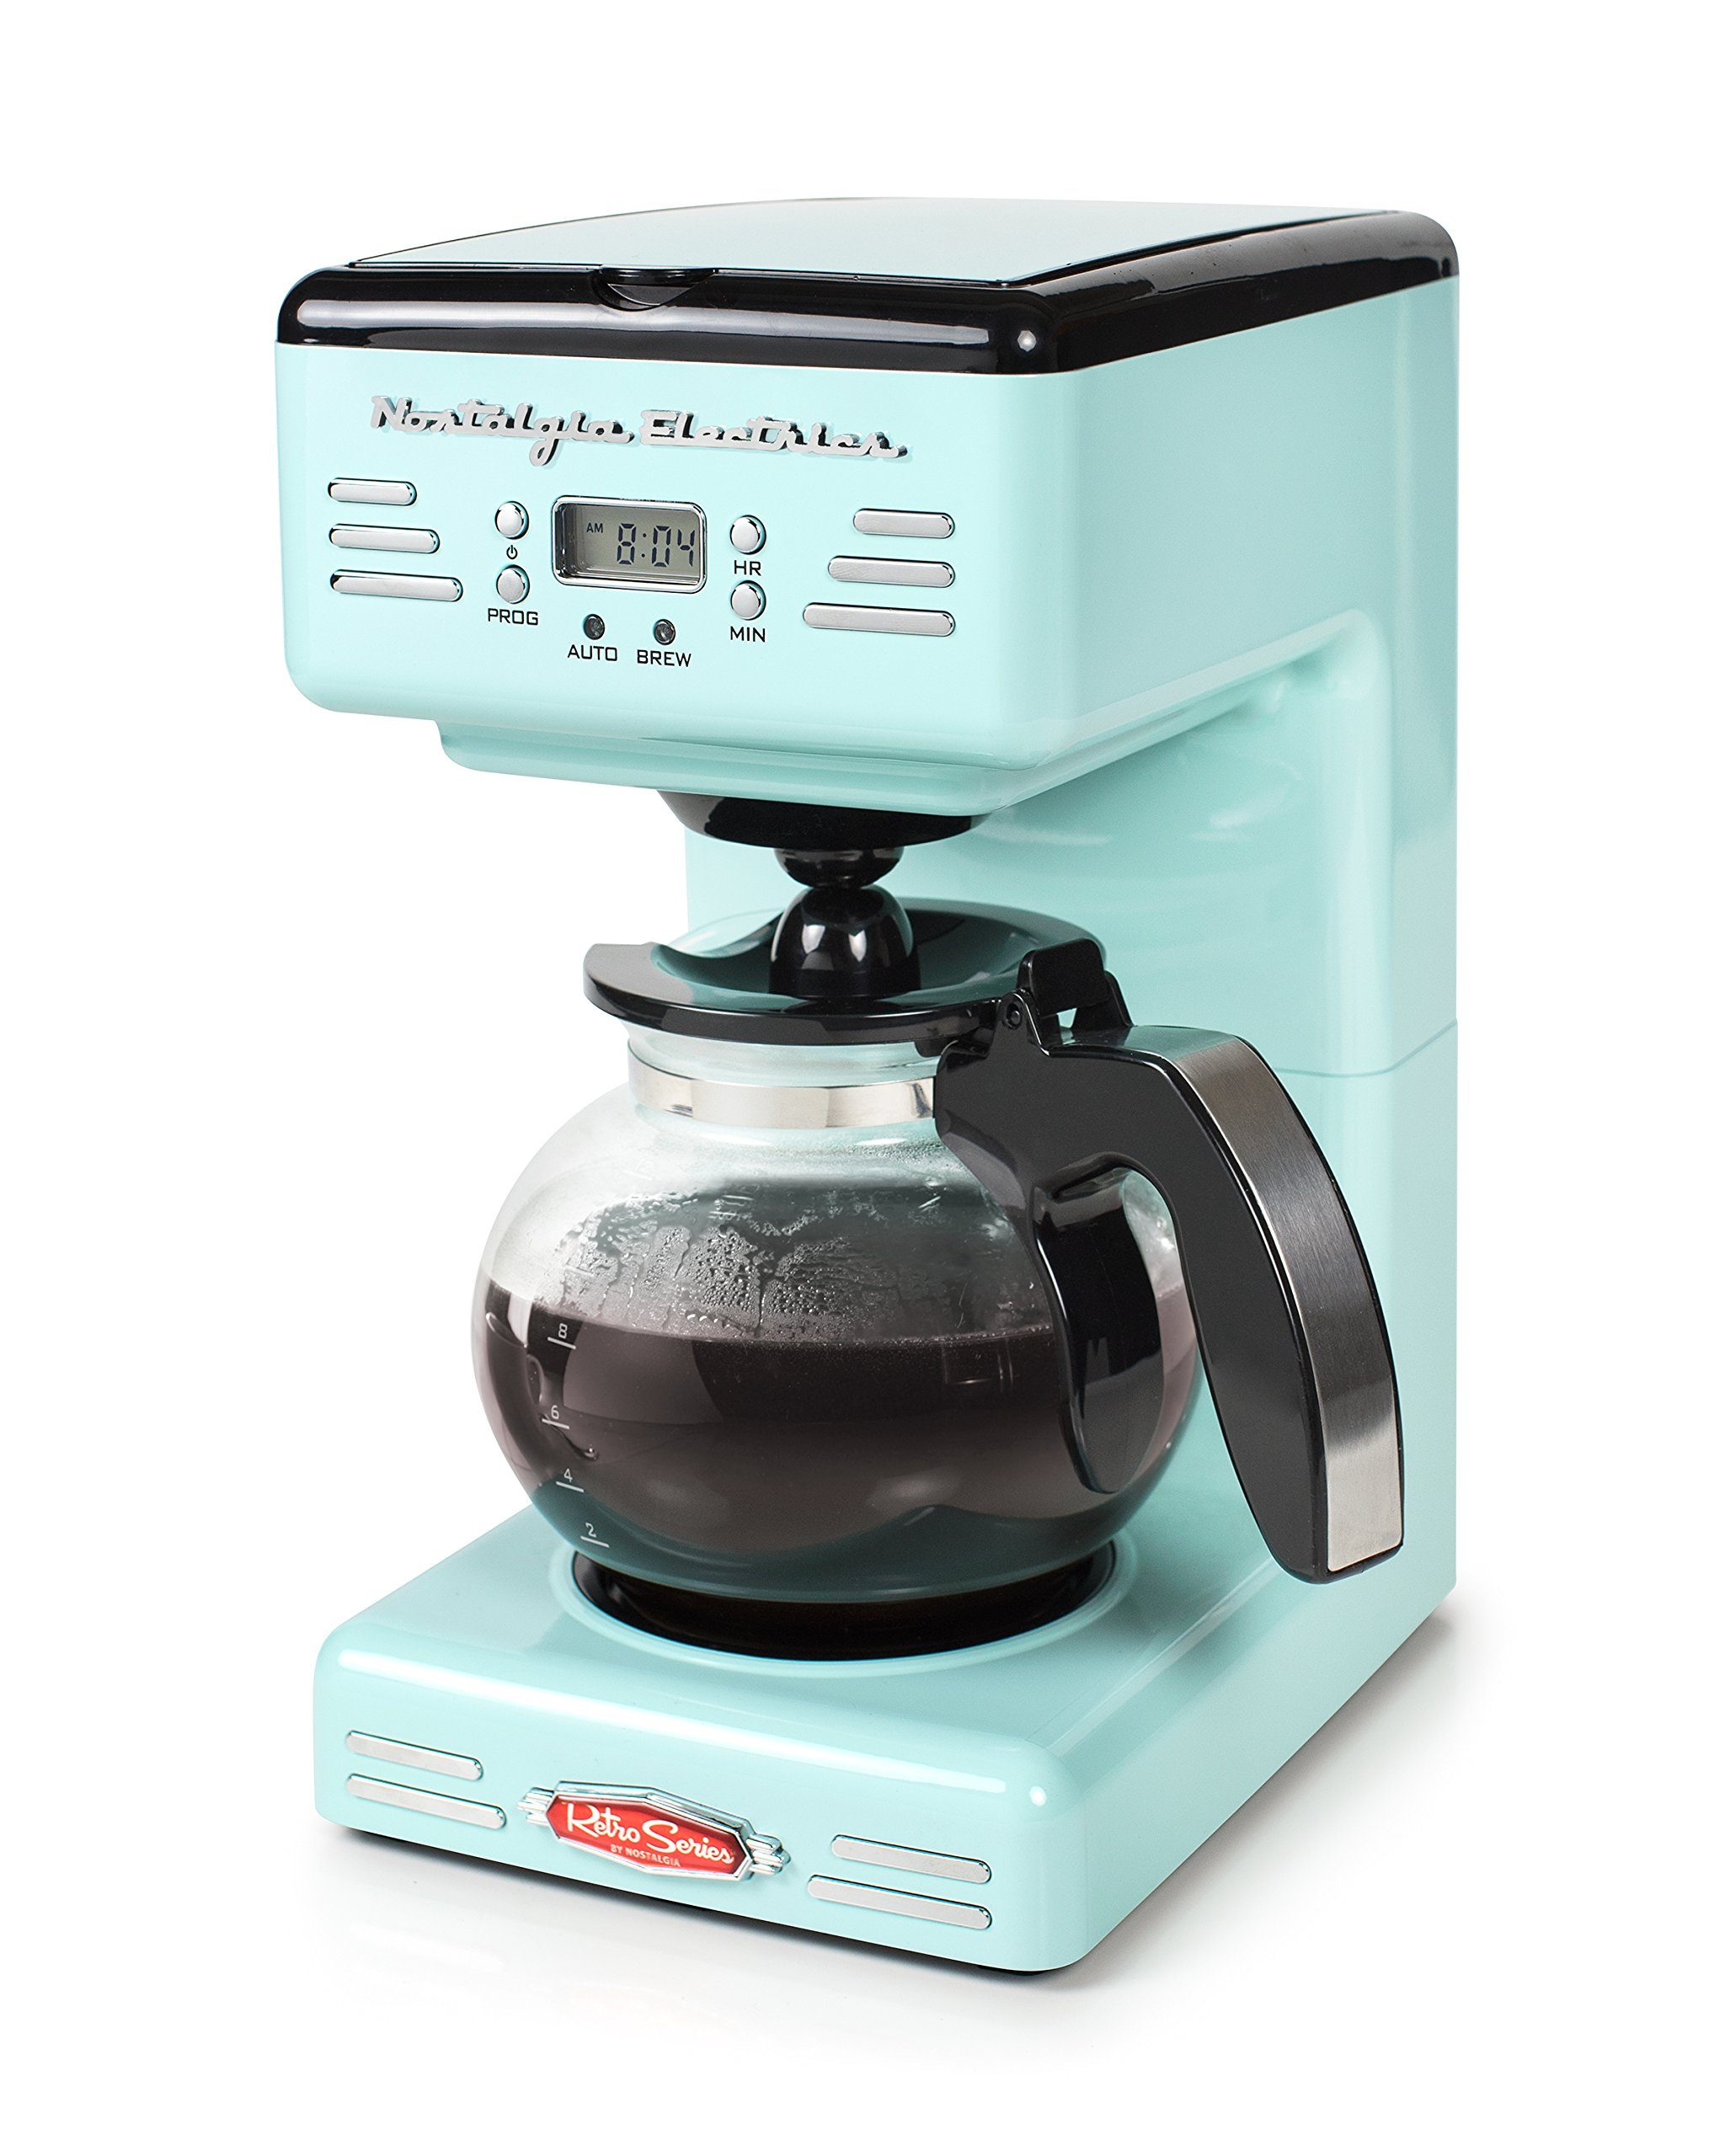 Nostalgia RCOF120AQ Retro 12-Cup Programmable Coffee Maker – Aqua Blue